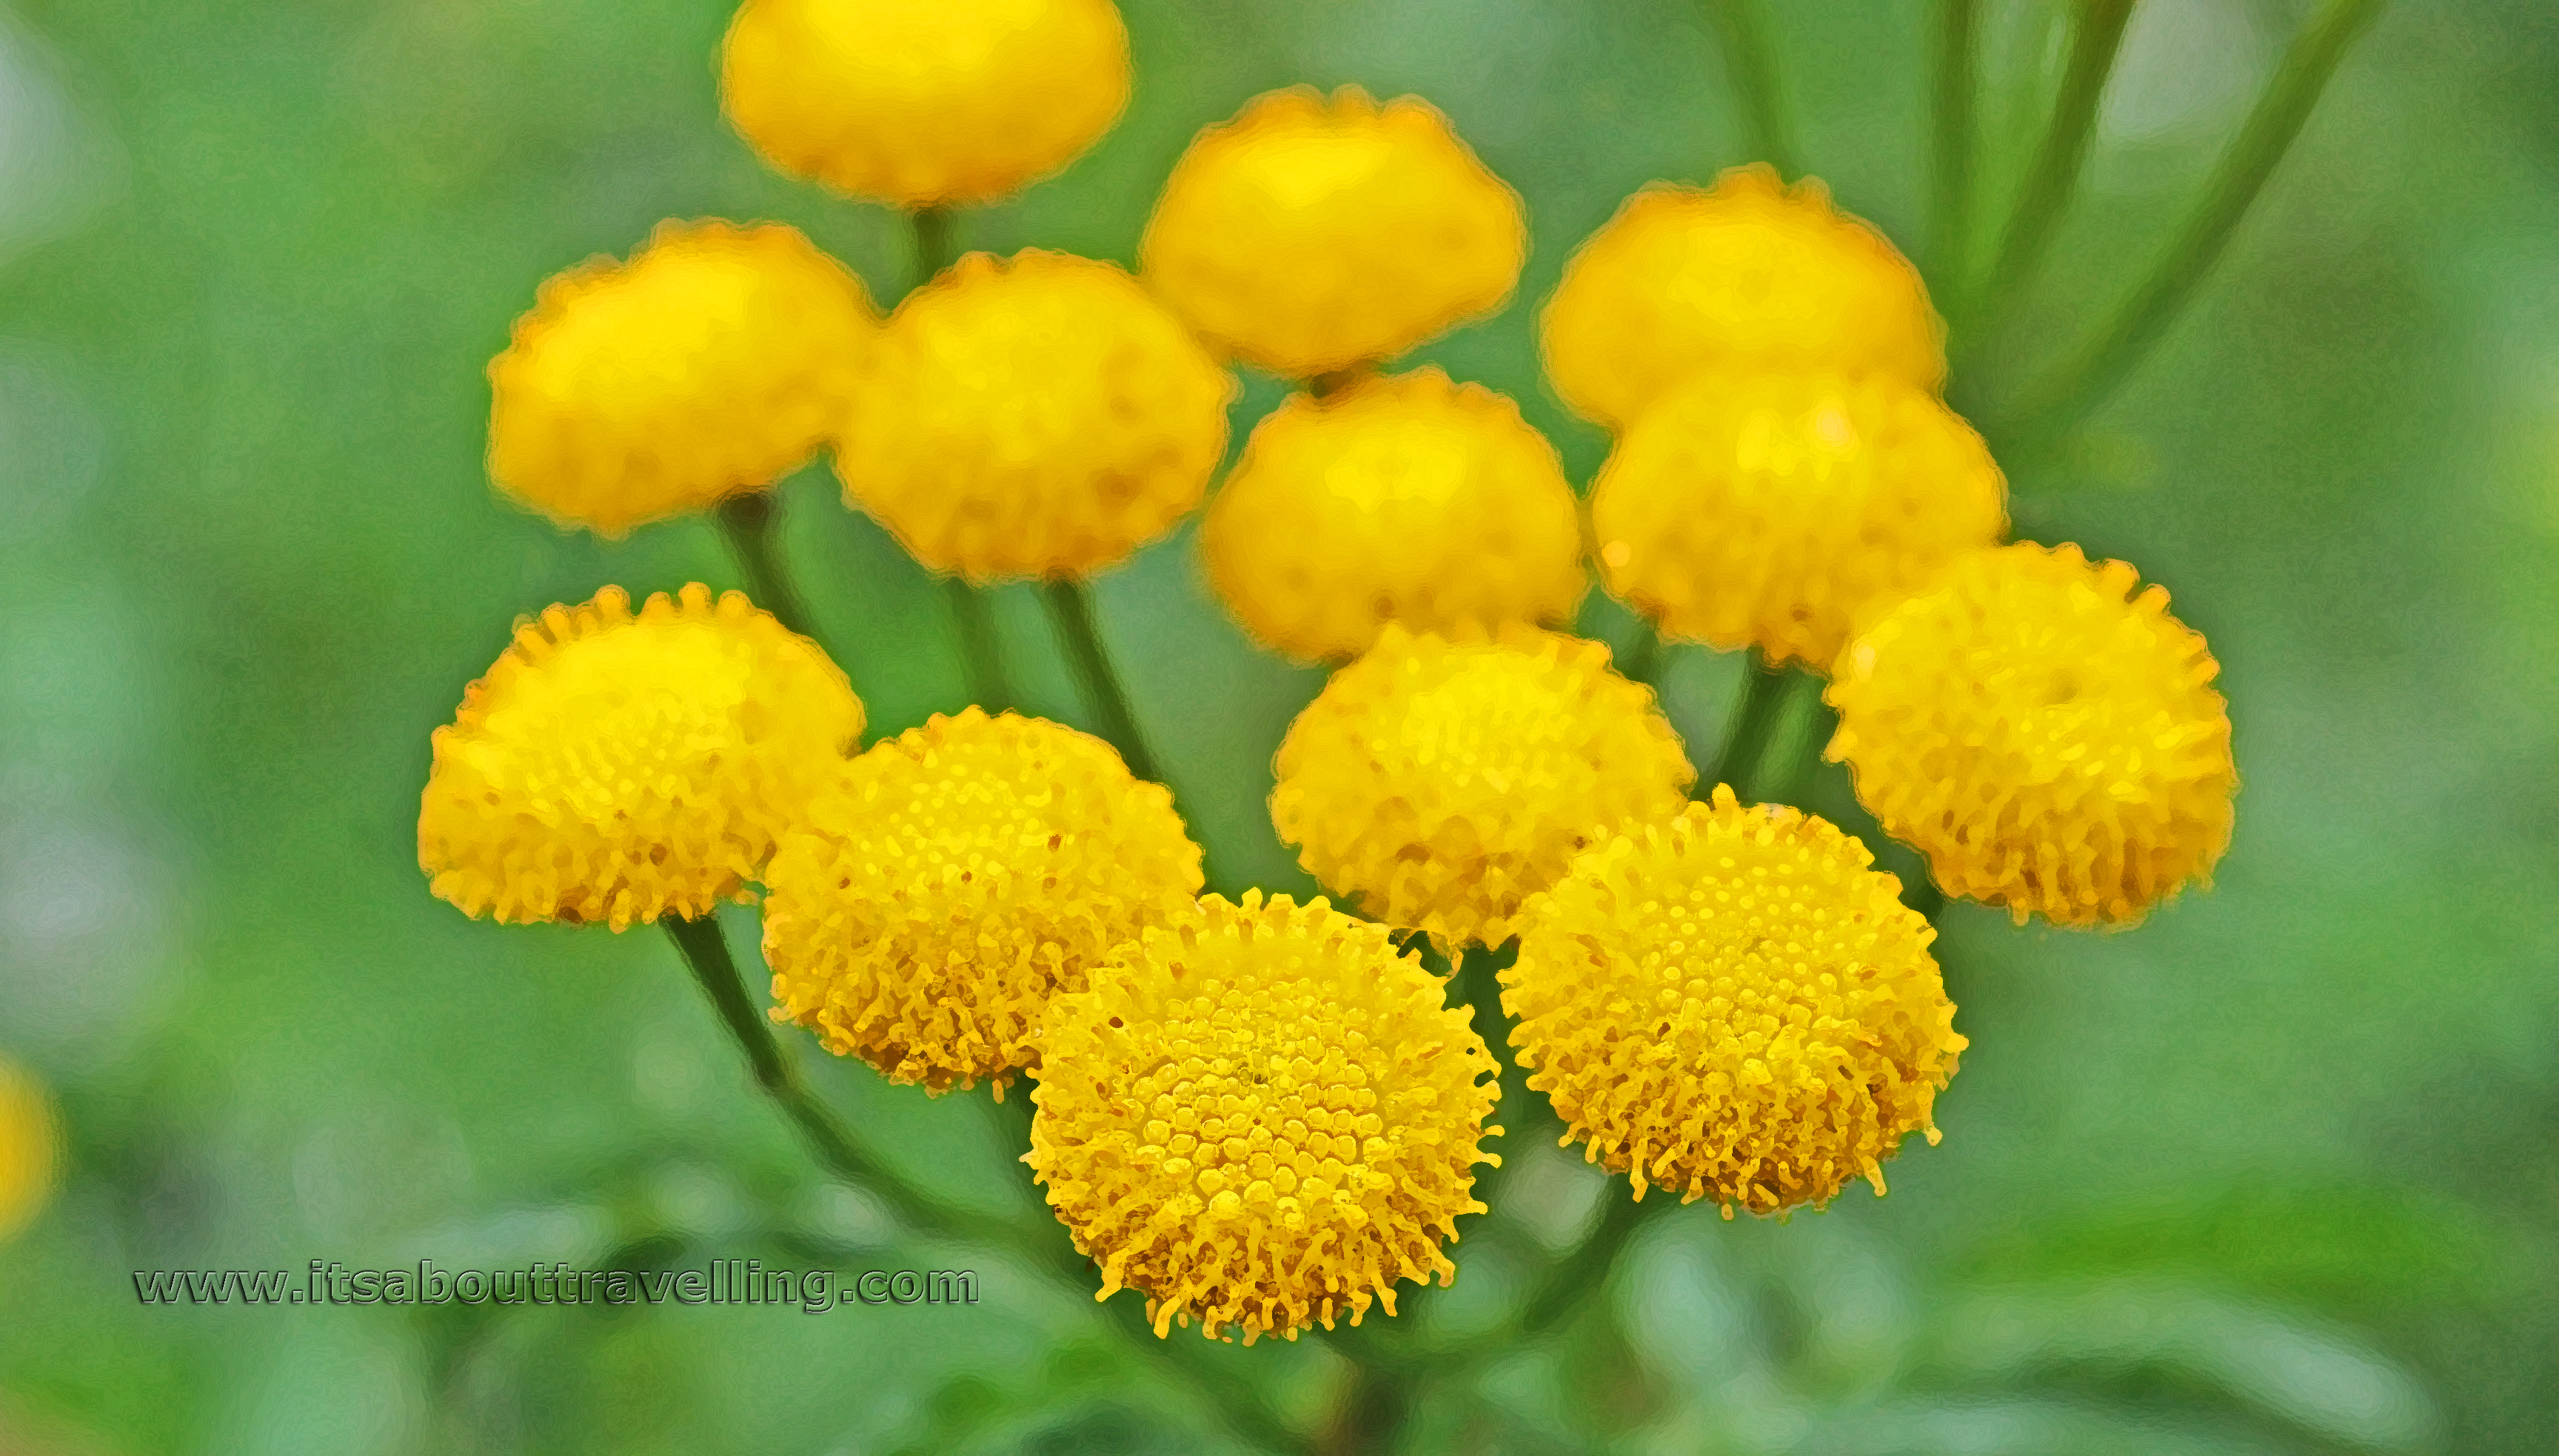 Common Tansy Weed Or Attractive Wild Flower Pic Of The Day